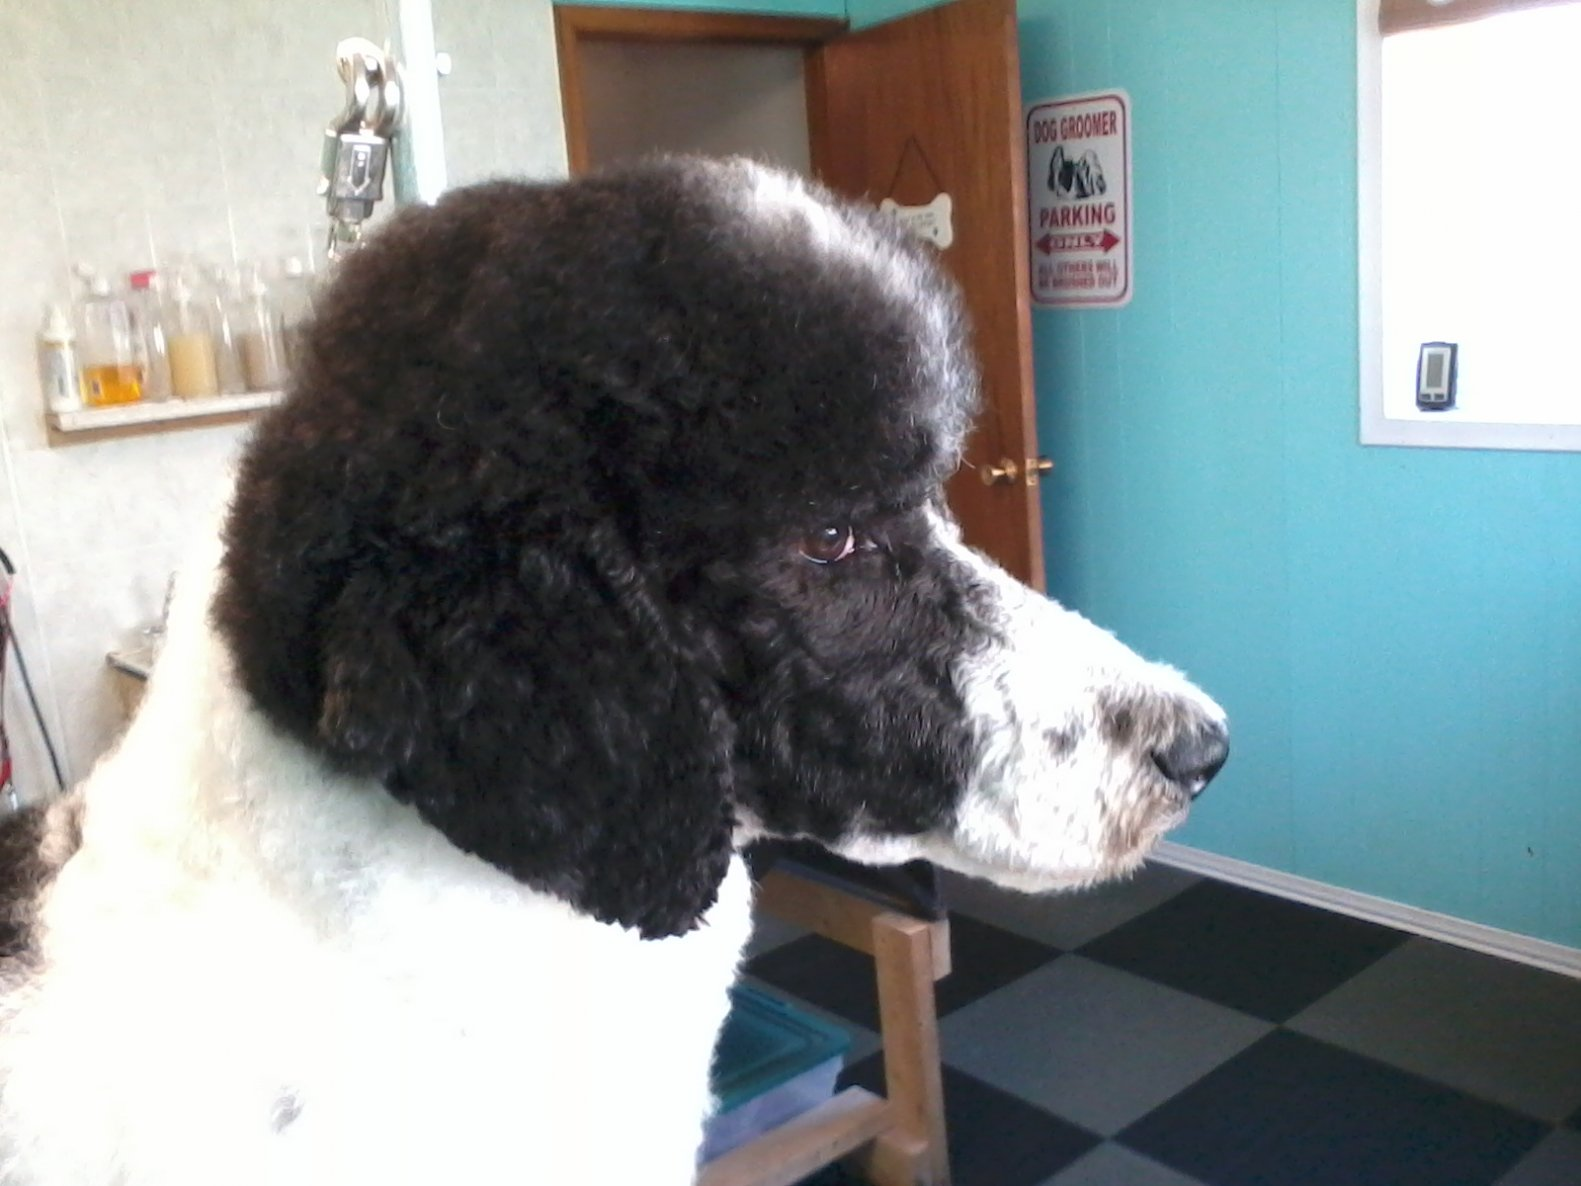 Where in Canada to get a rescue poodle - Poodle Forum